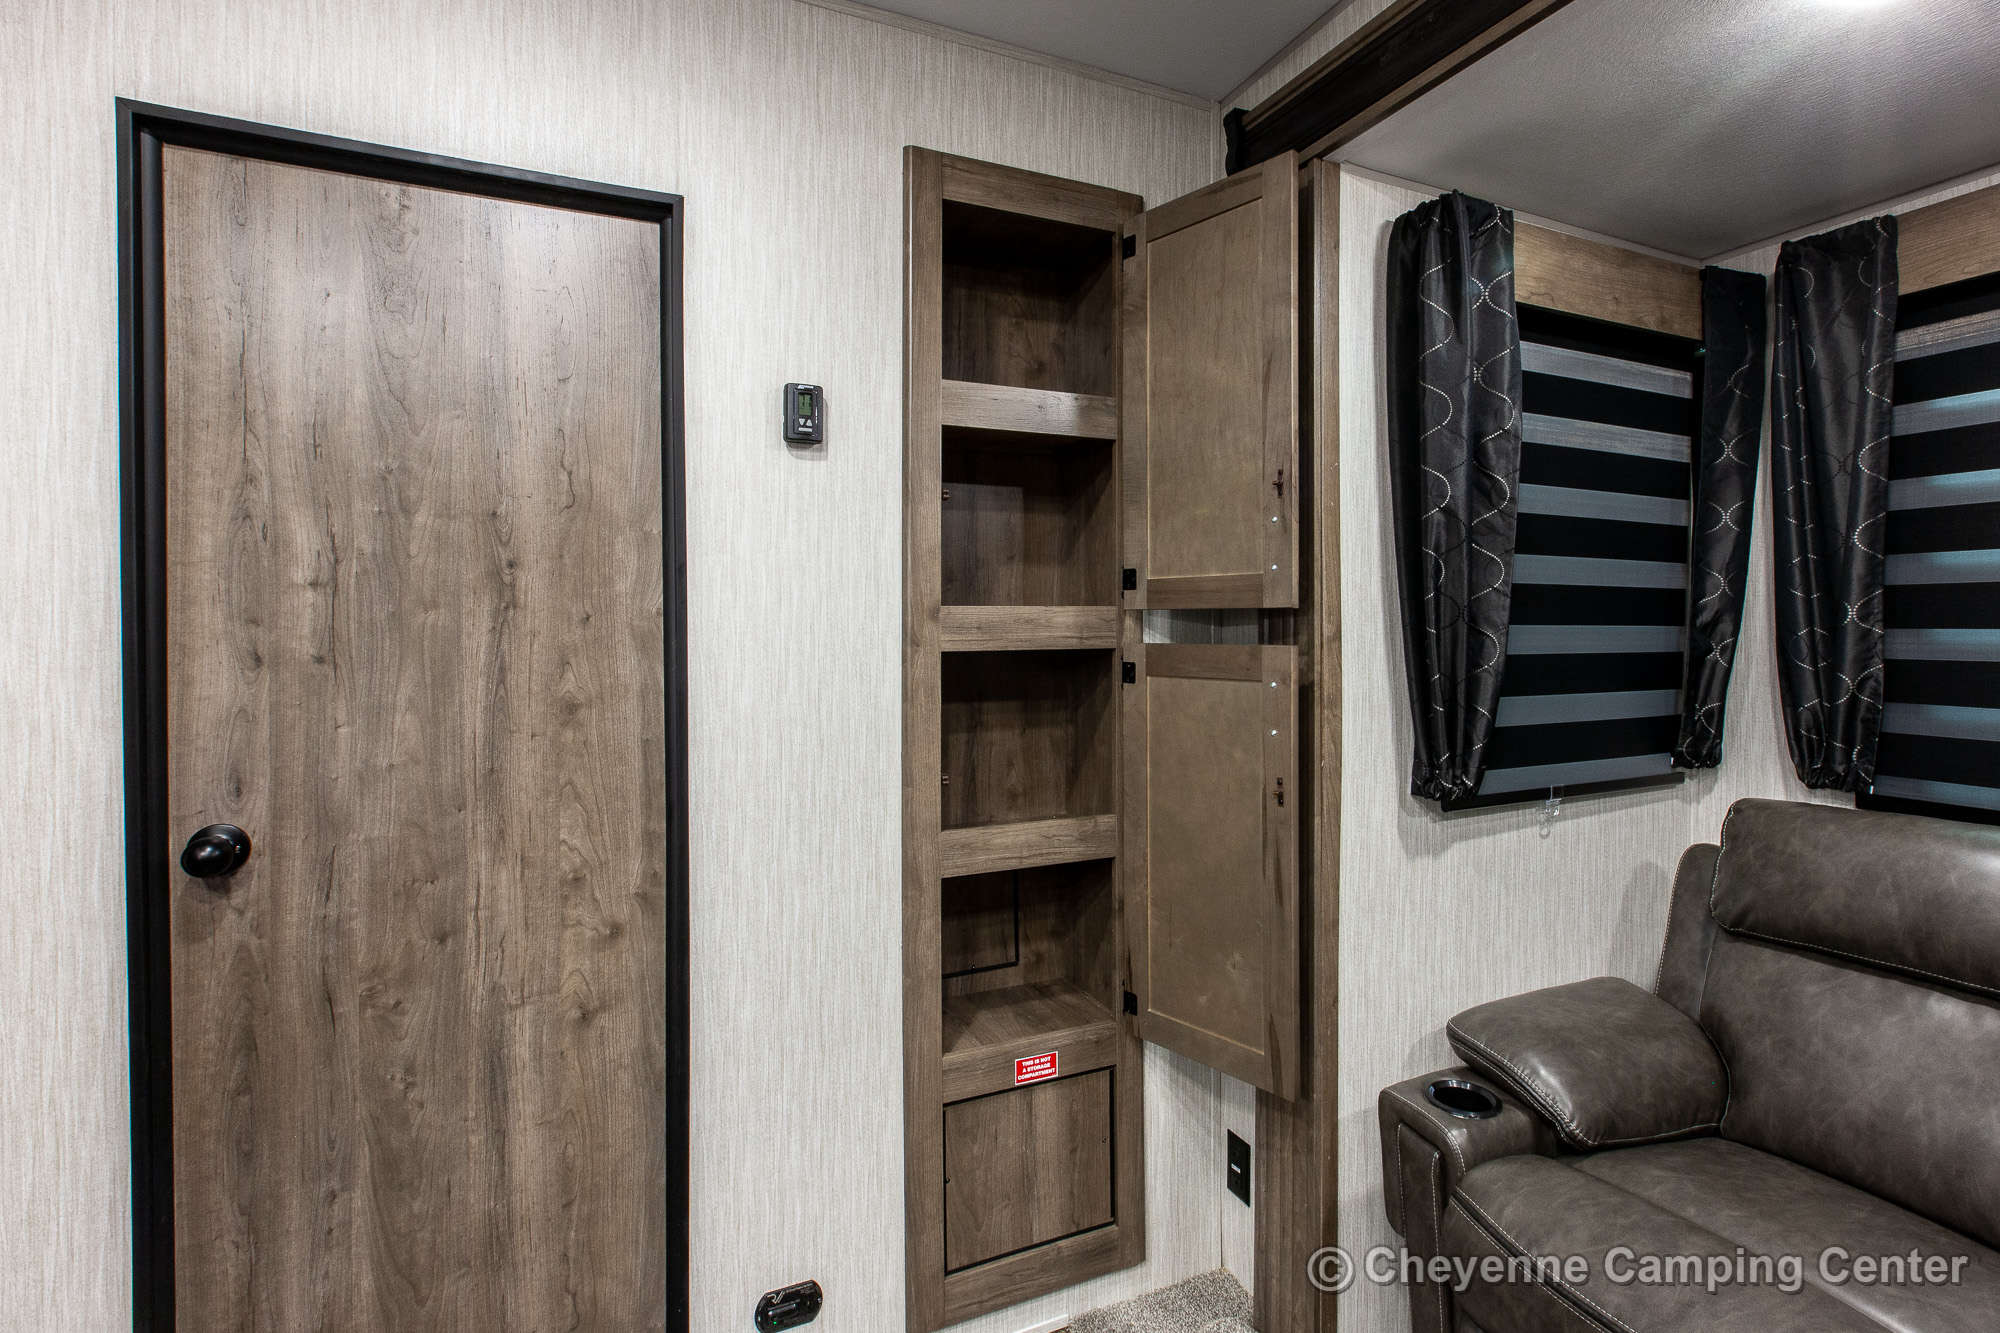 2021 Forest River Cherokee Wolf Pack 25PACK12 Bunkhouse Toy Hauler Travel Trailer Interior Image